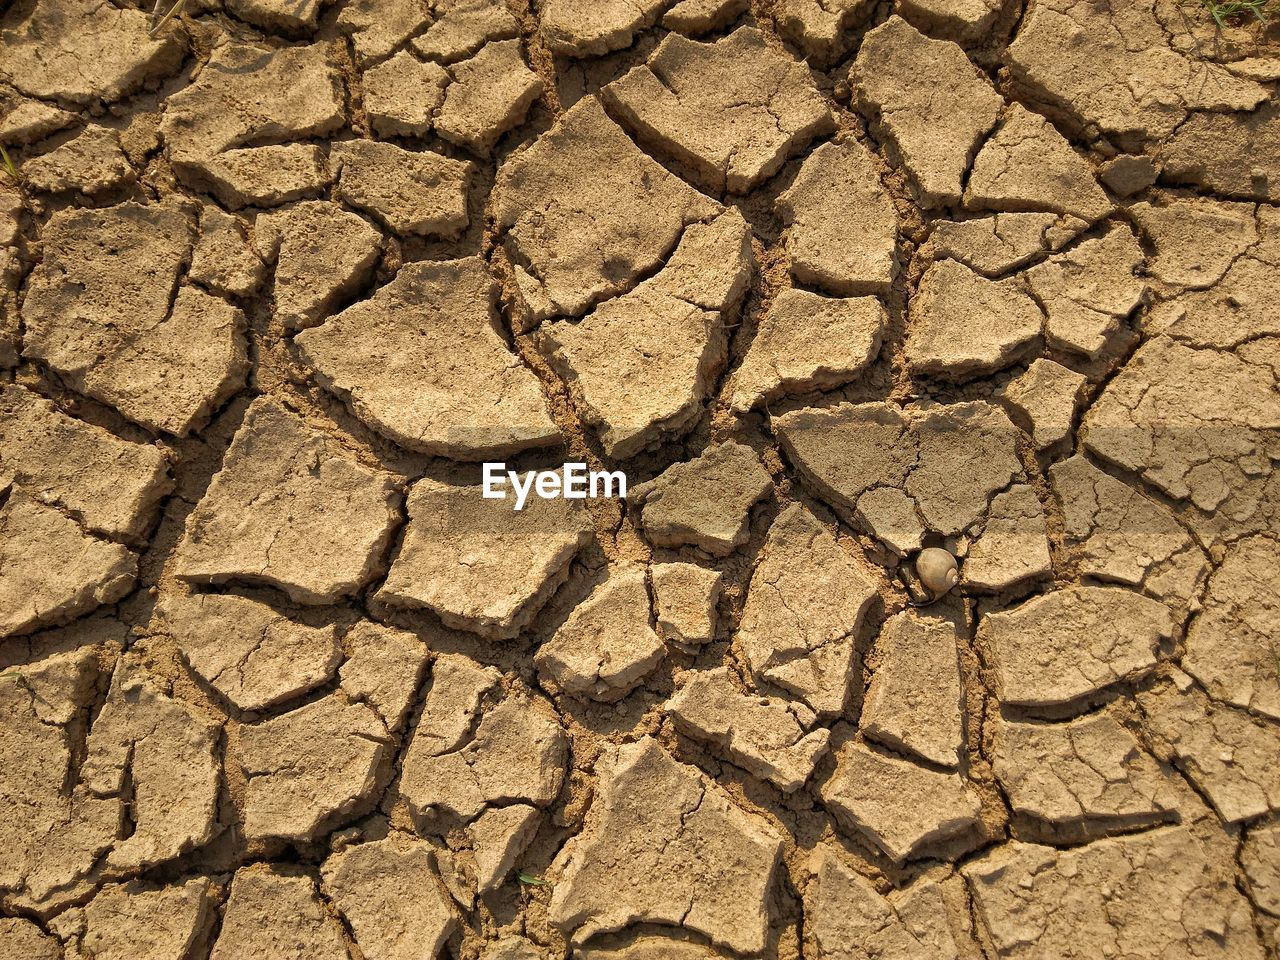 drought, backgrounds, climate, full frame, arid climate, dry, environment, scenics - nature, cracked, barren, textured, nature, pattern, land, no people, natural pattern, landscape, day, dirt, mud, outdoors, power in nature, textured effect